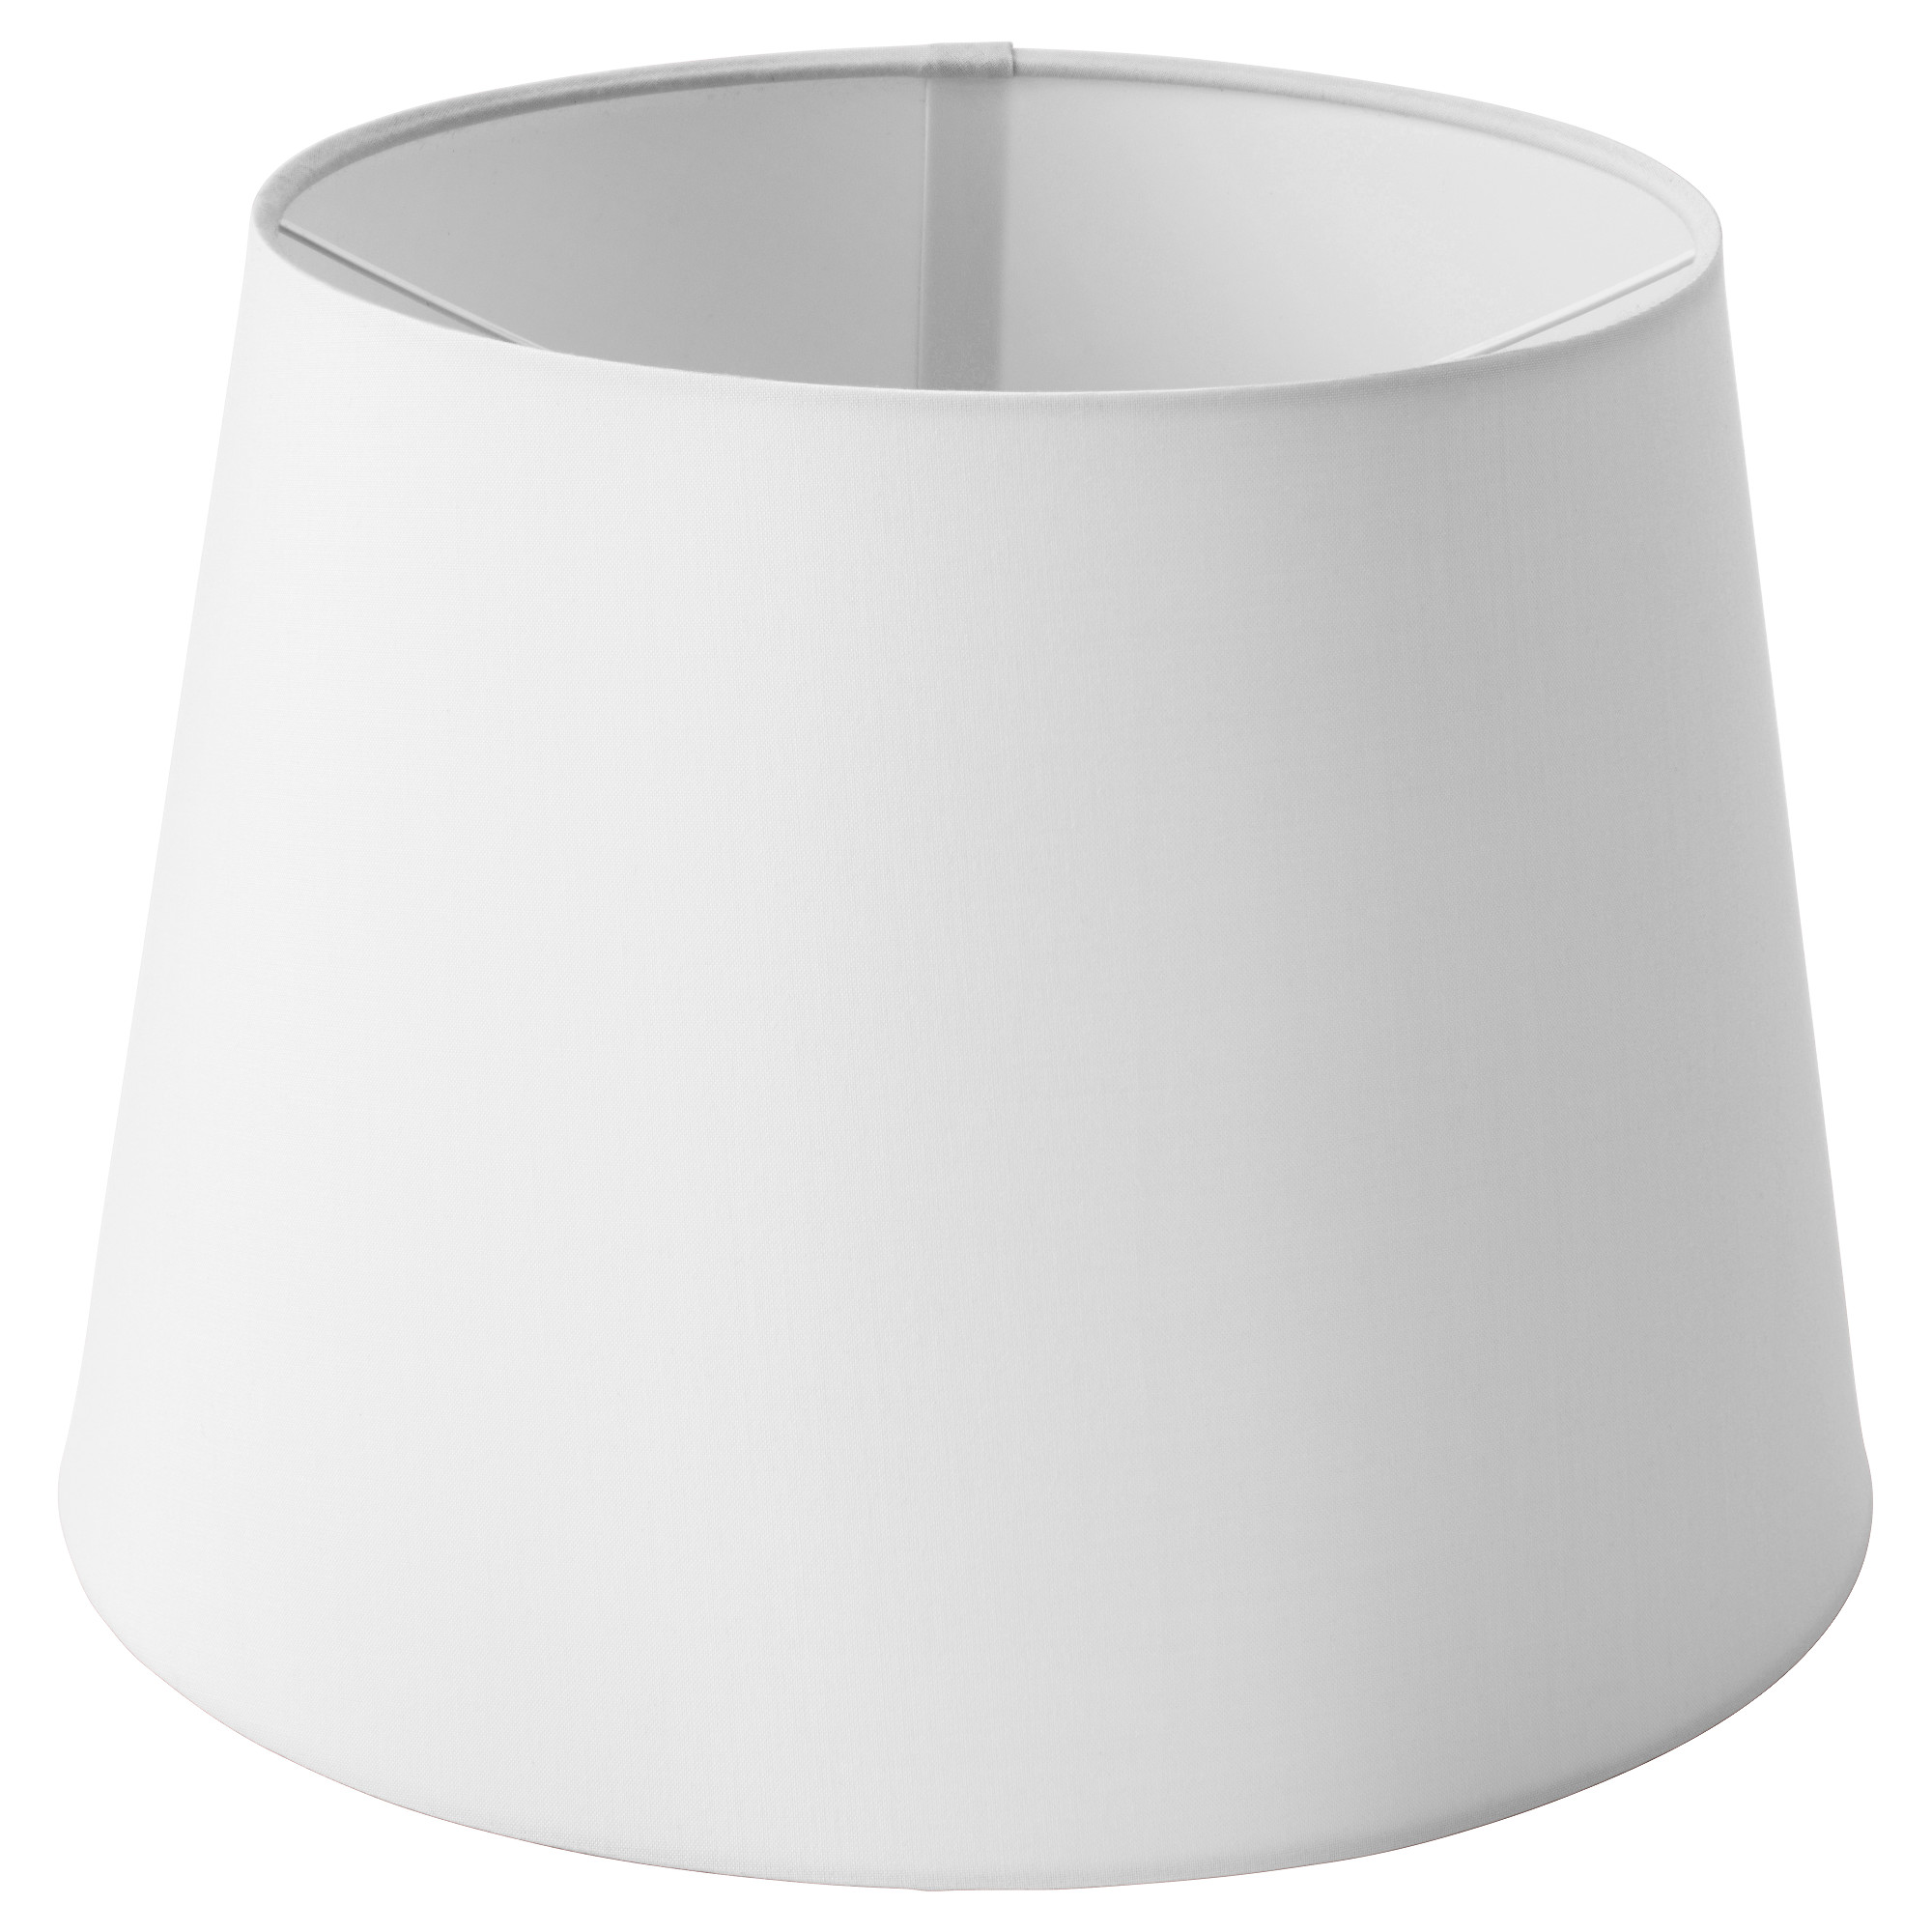 JÄRA lamp shade, white Height: 9